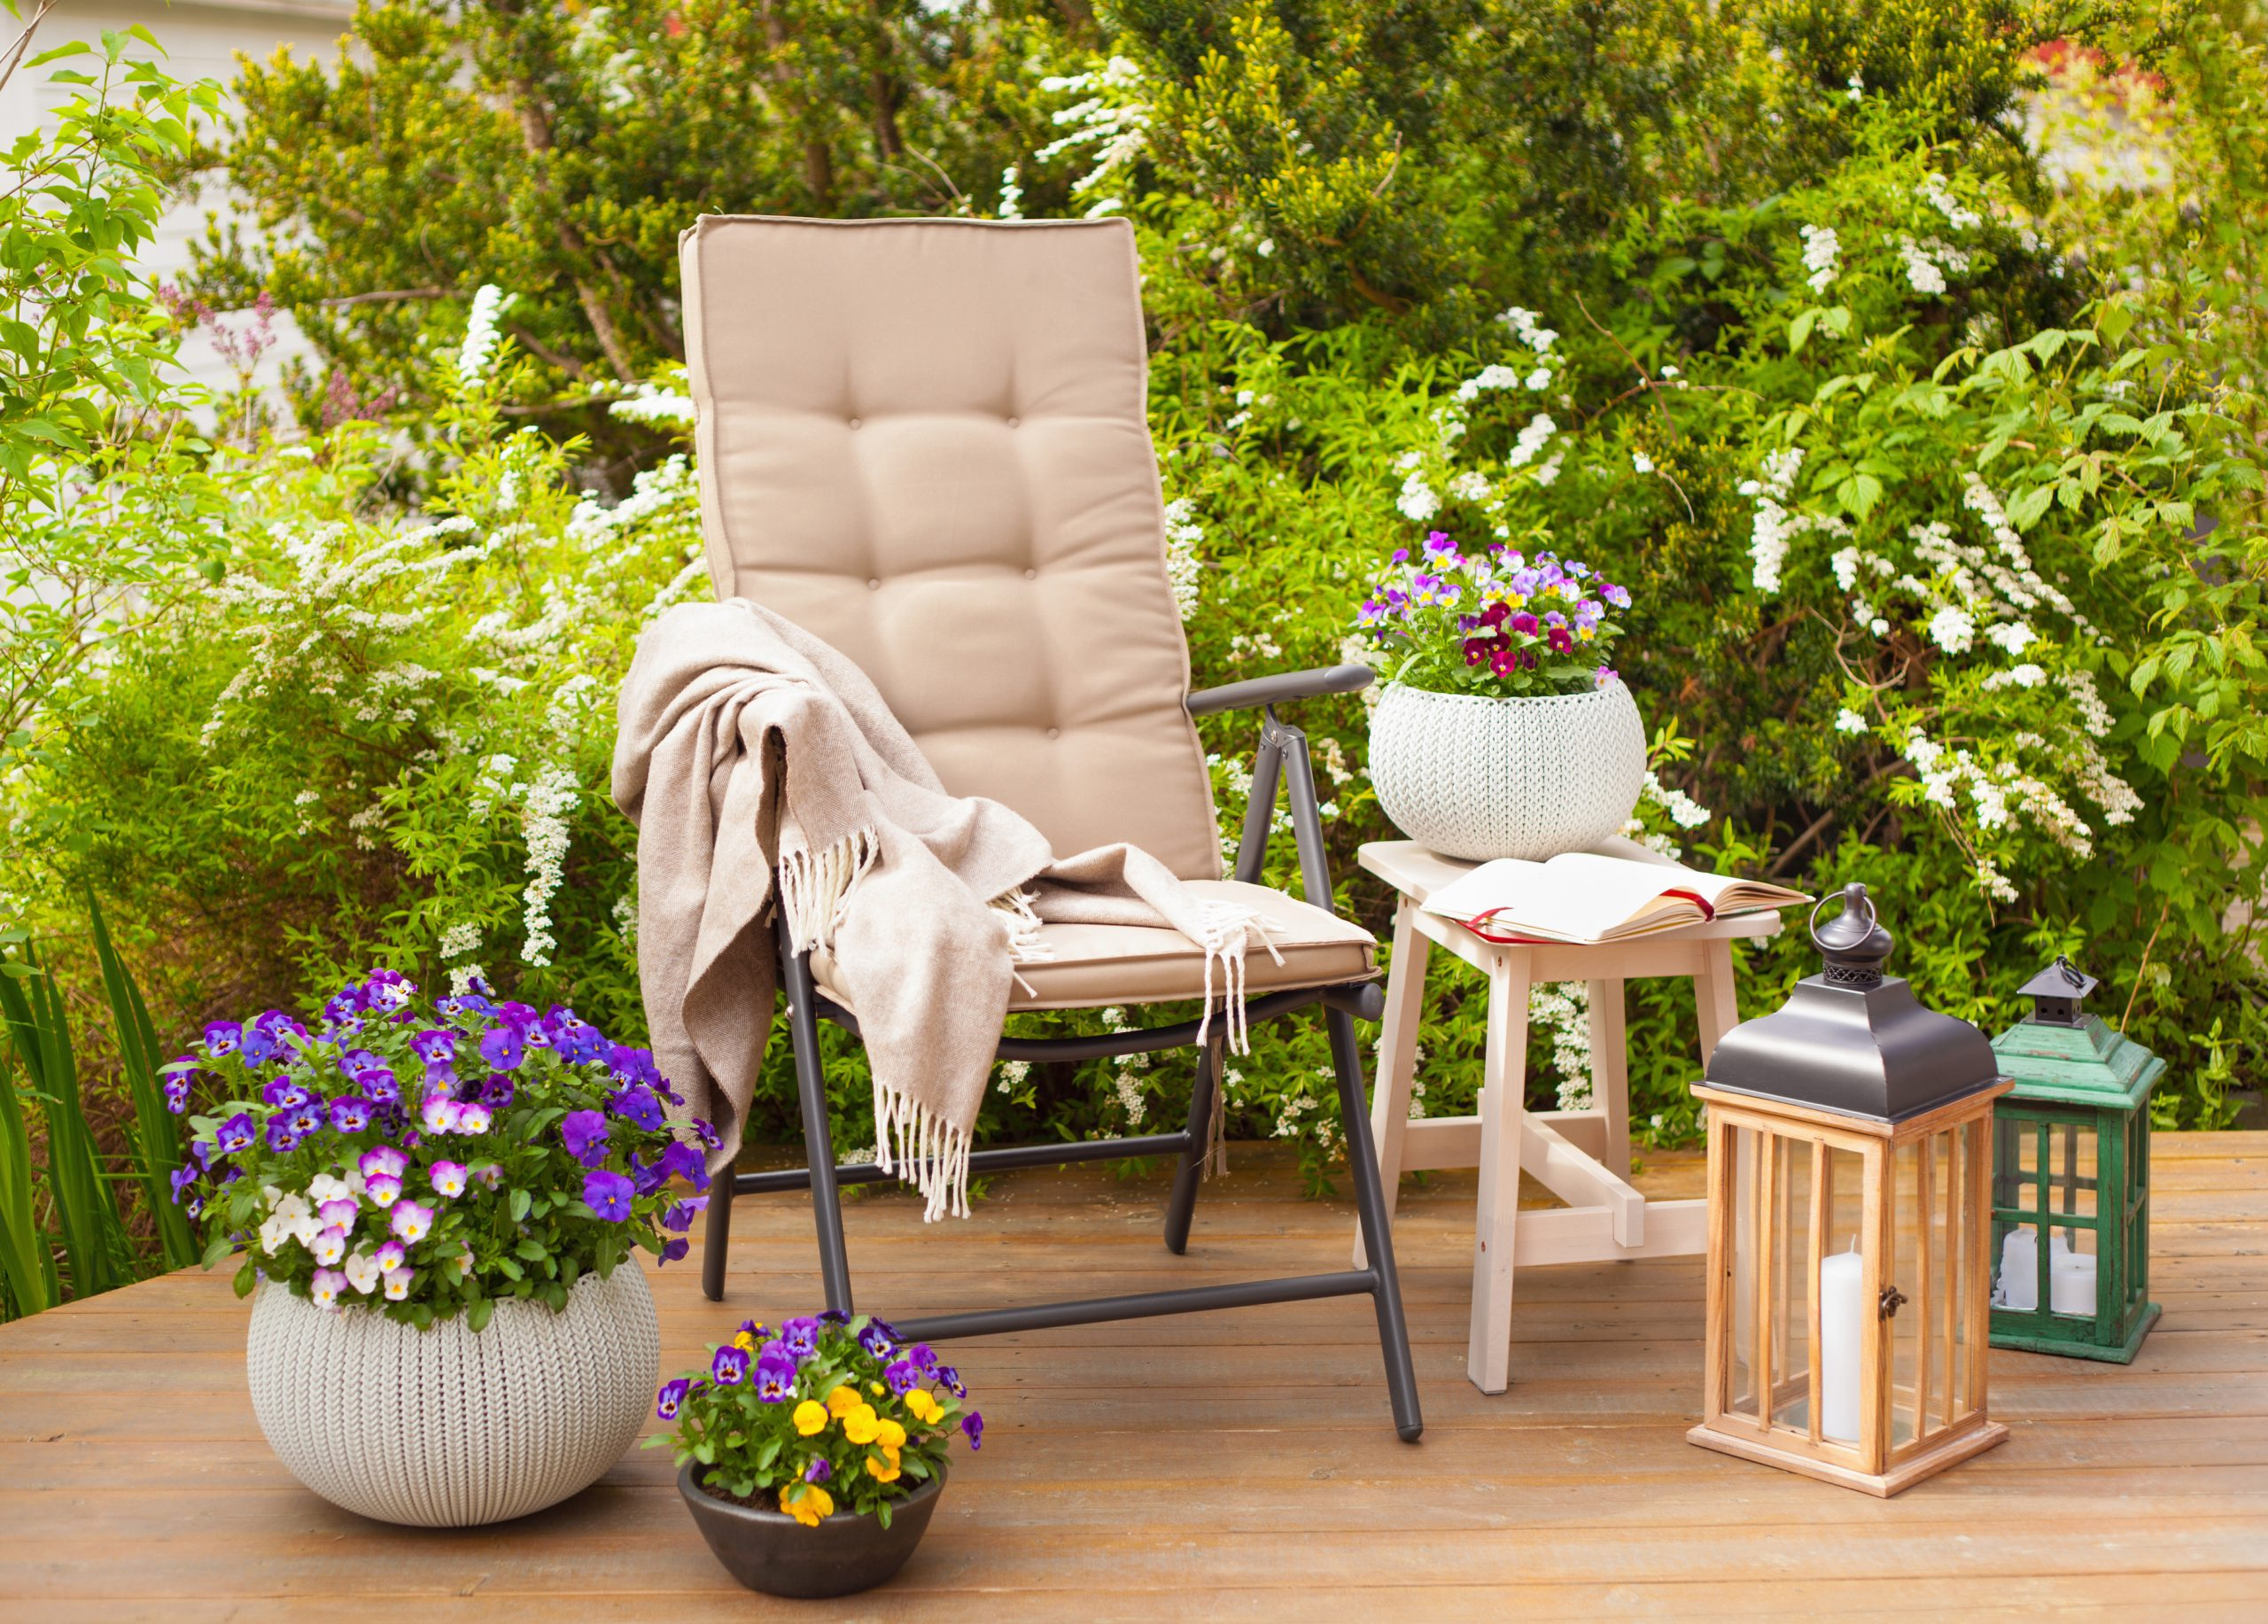 Chair and flower planters